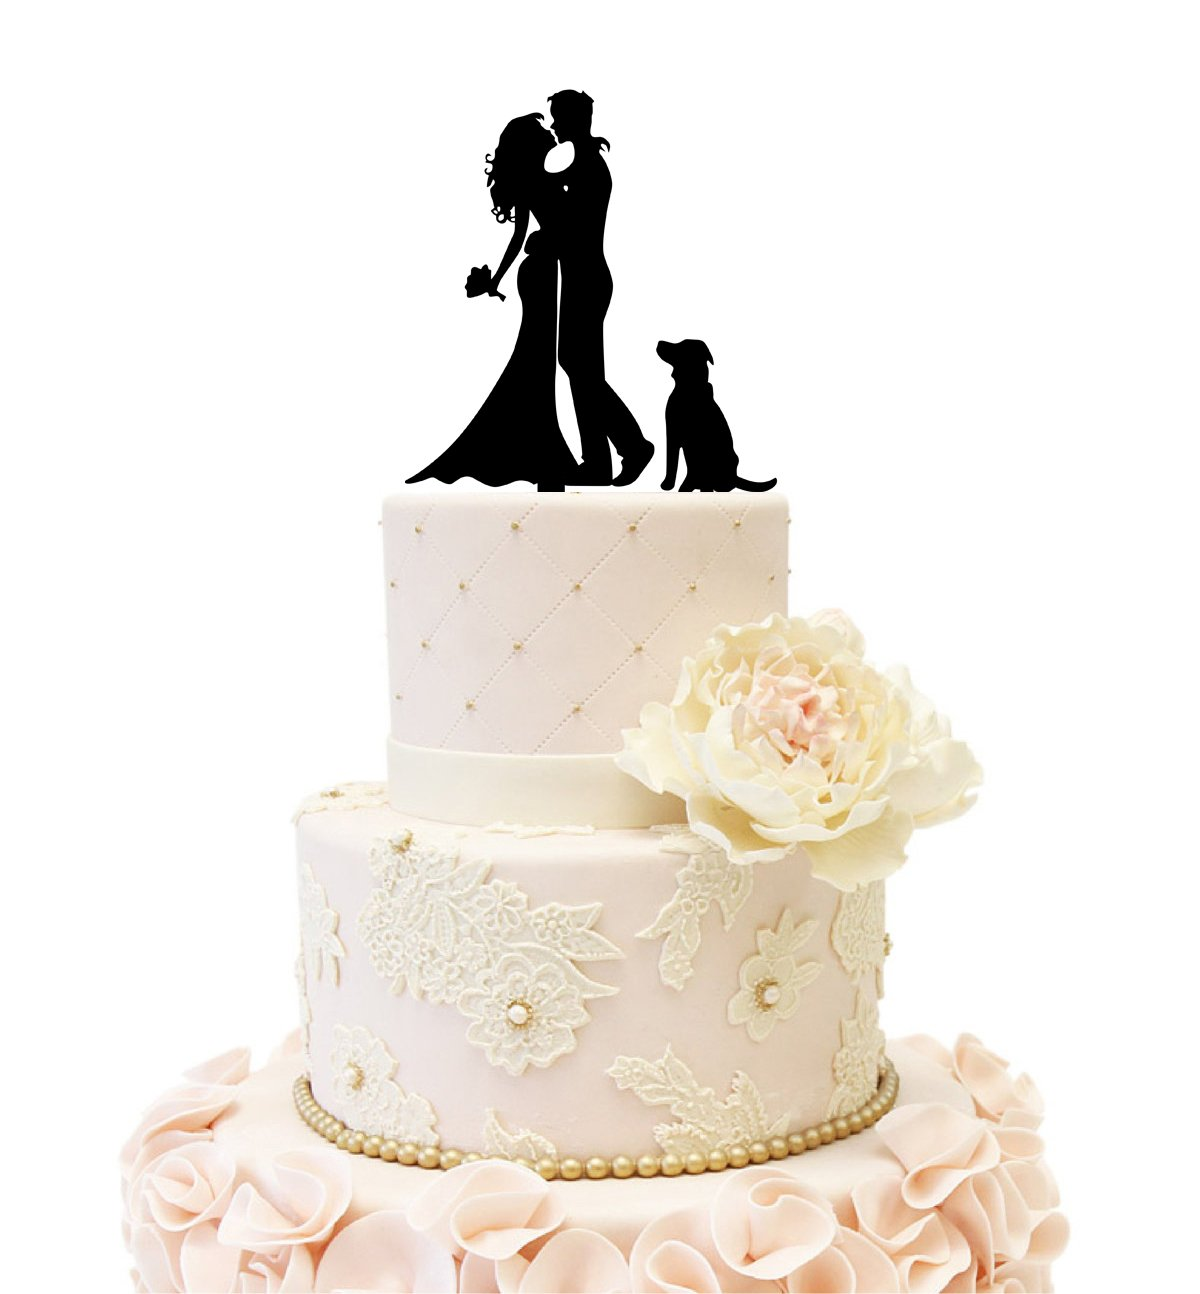 Wedding Anniverary Cake Topper couple with a Dog (Black) by Uniquemystyle